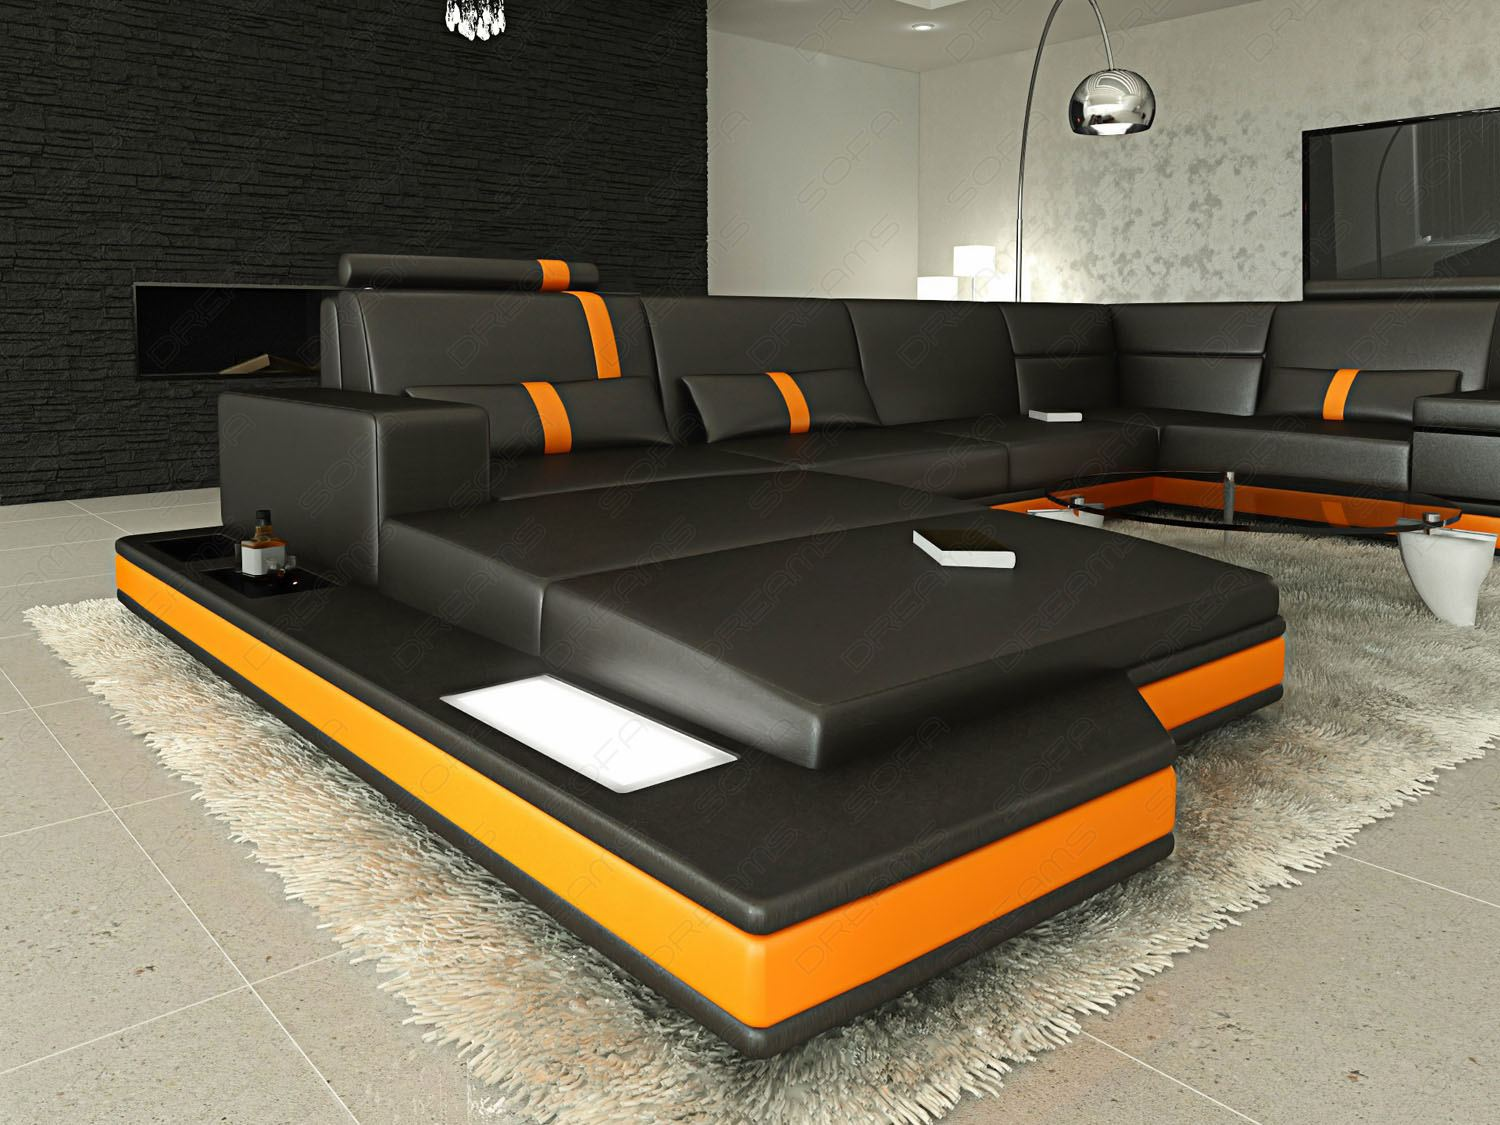 designersofa luxus wohnlandschaft messana u form schwarz orange led beleuchtung ebay. Black Bedroom Furniture Sets. Home Design Ideas